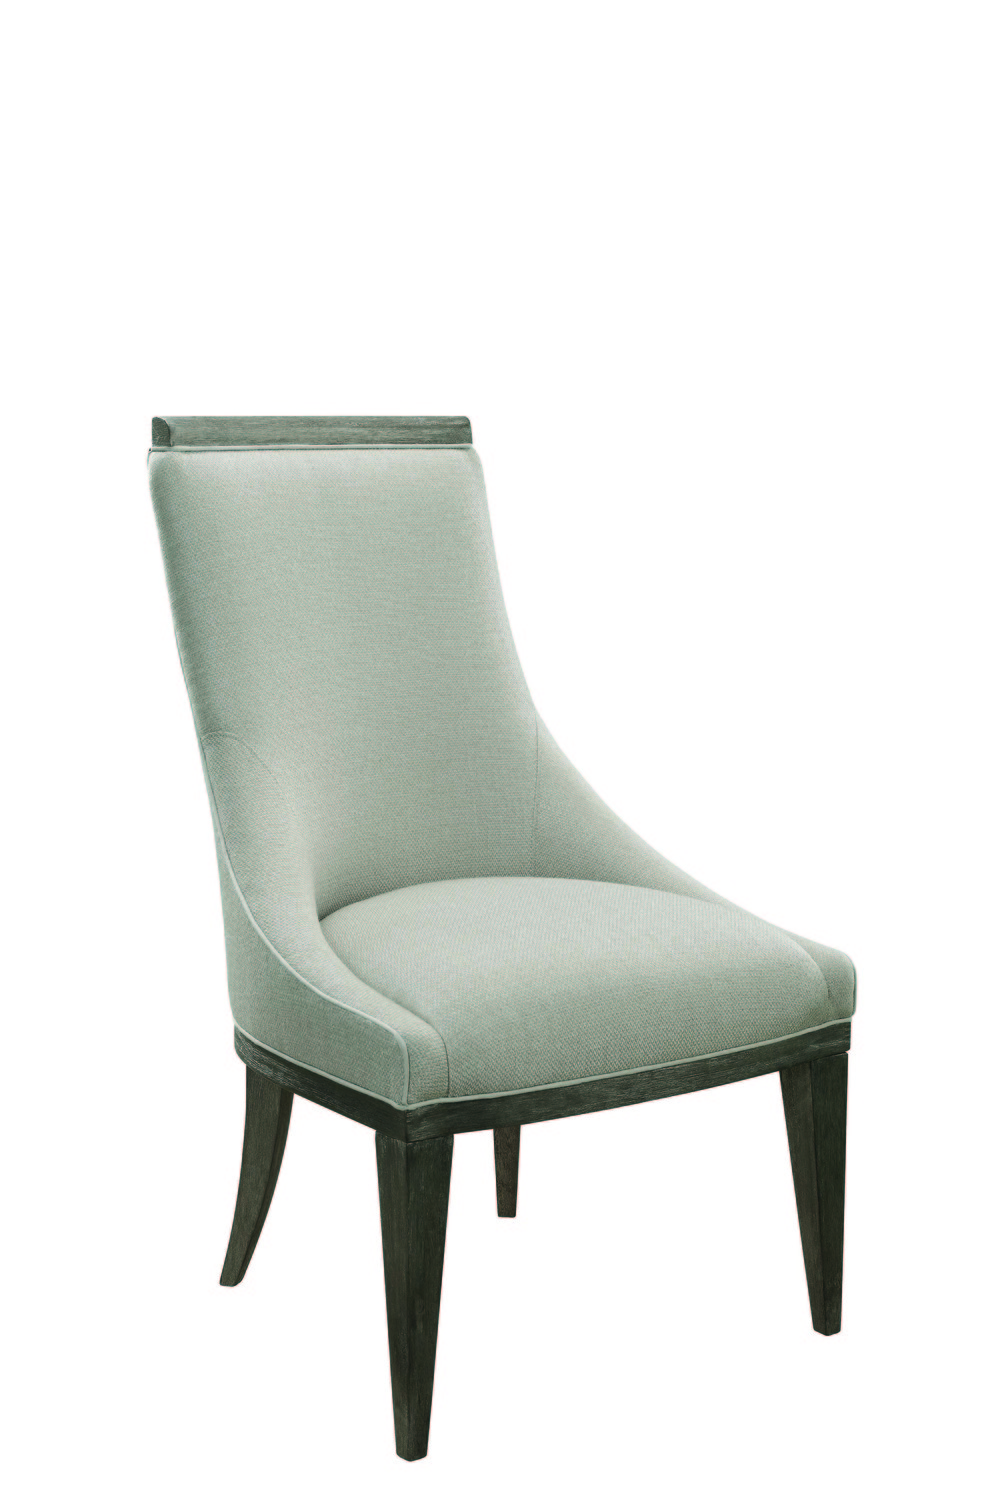 A.R.T. Furniture - Dining Chair